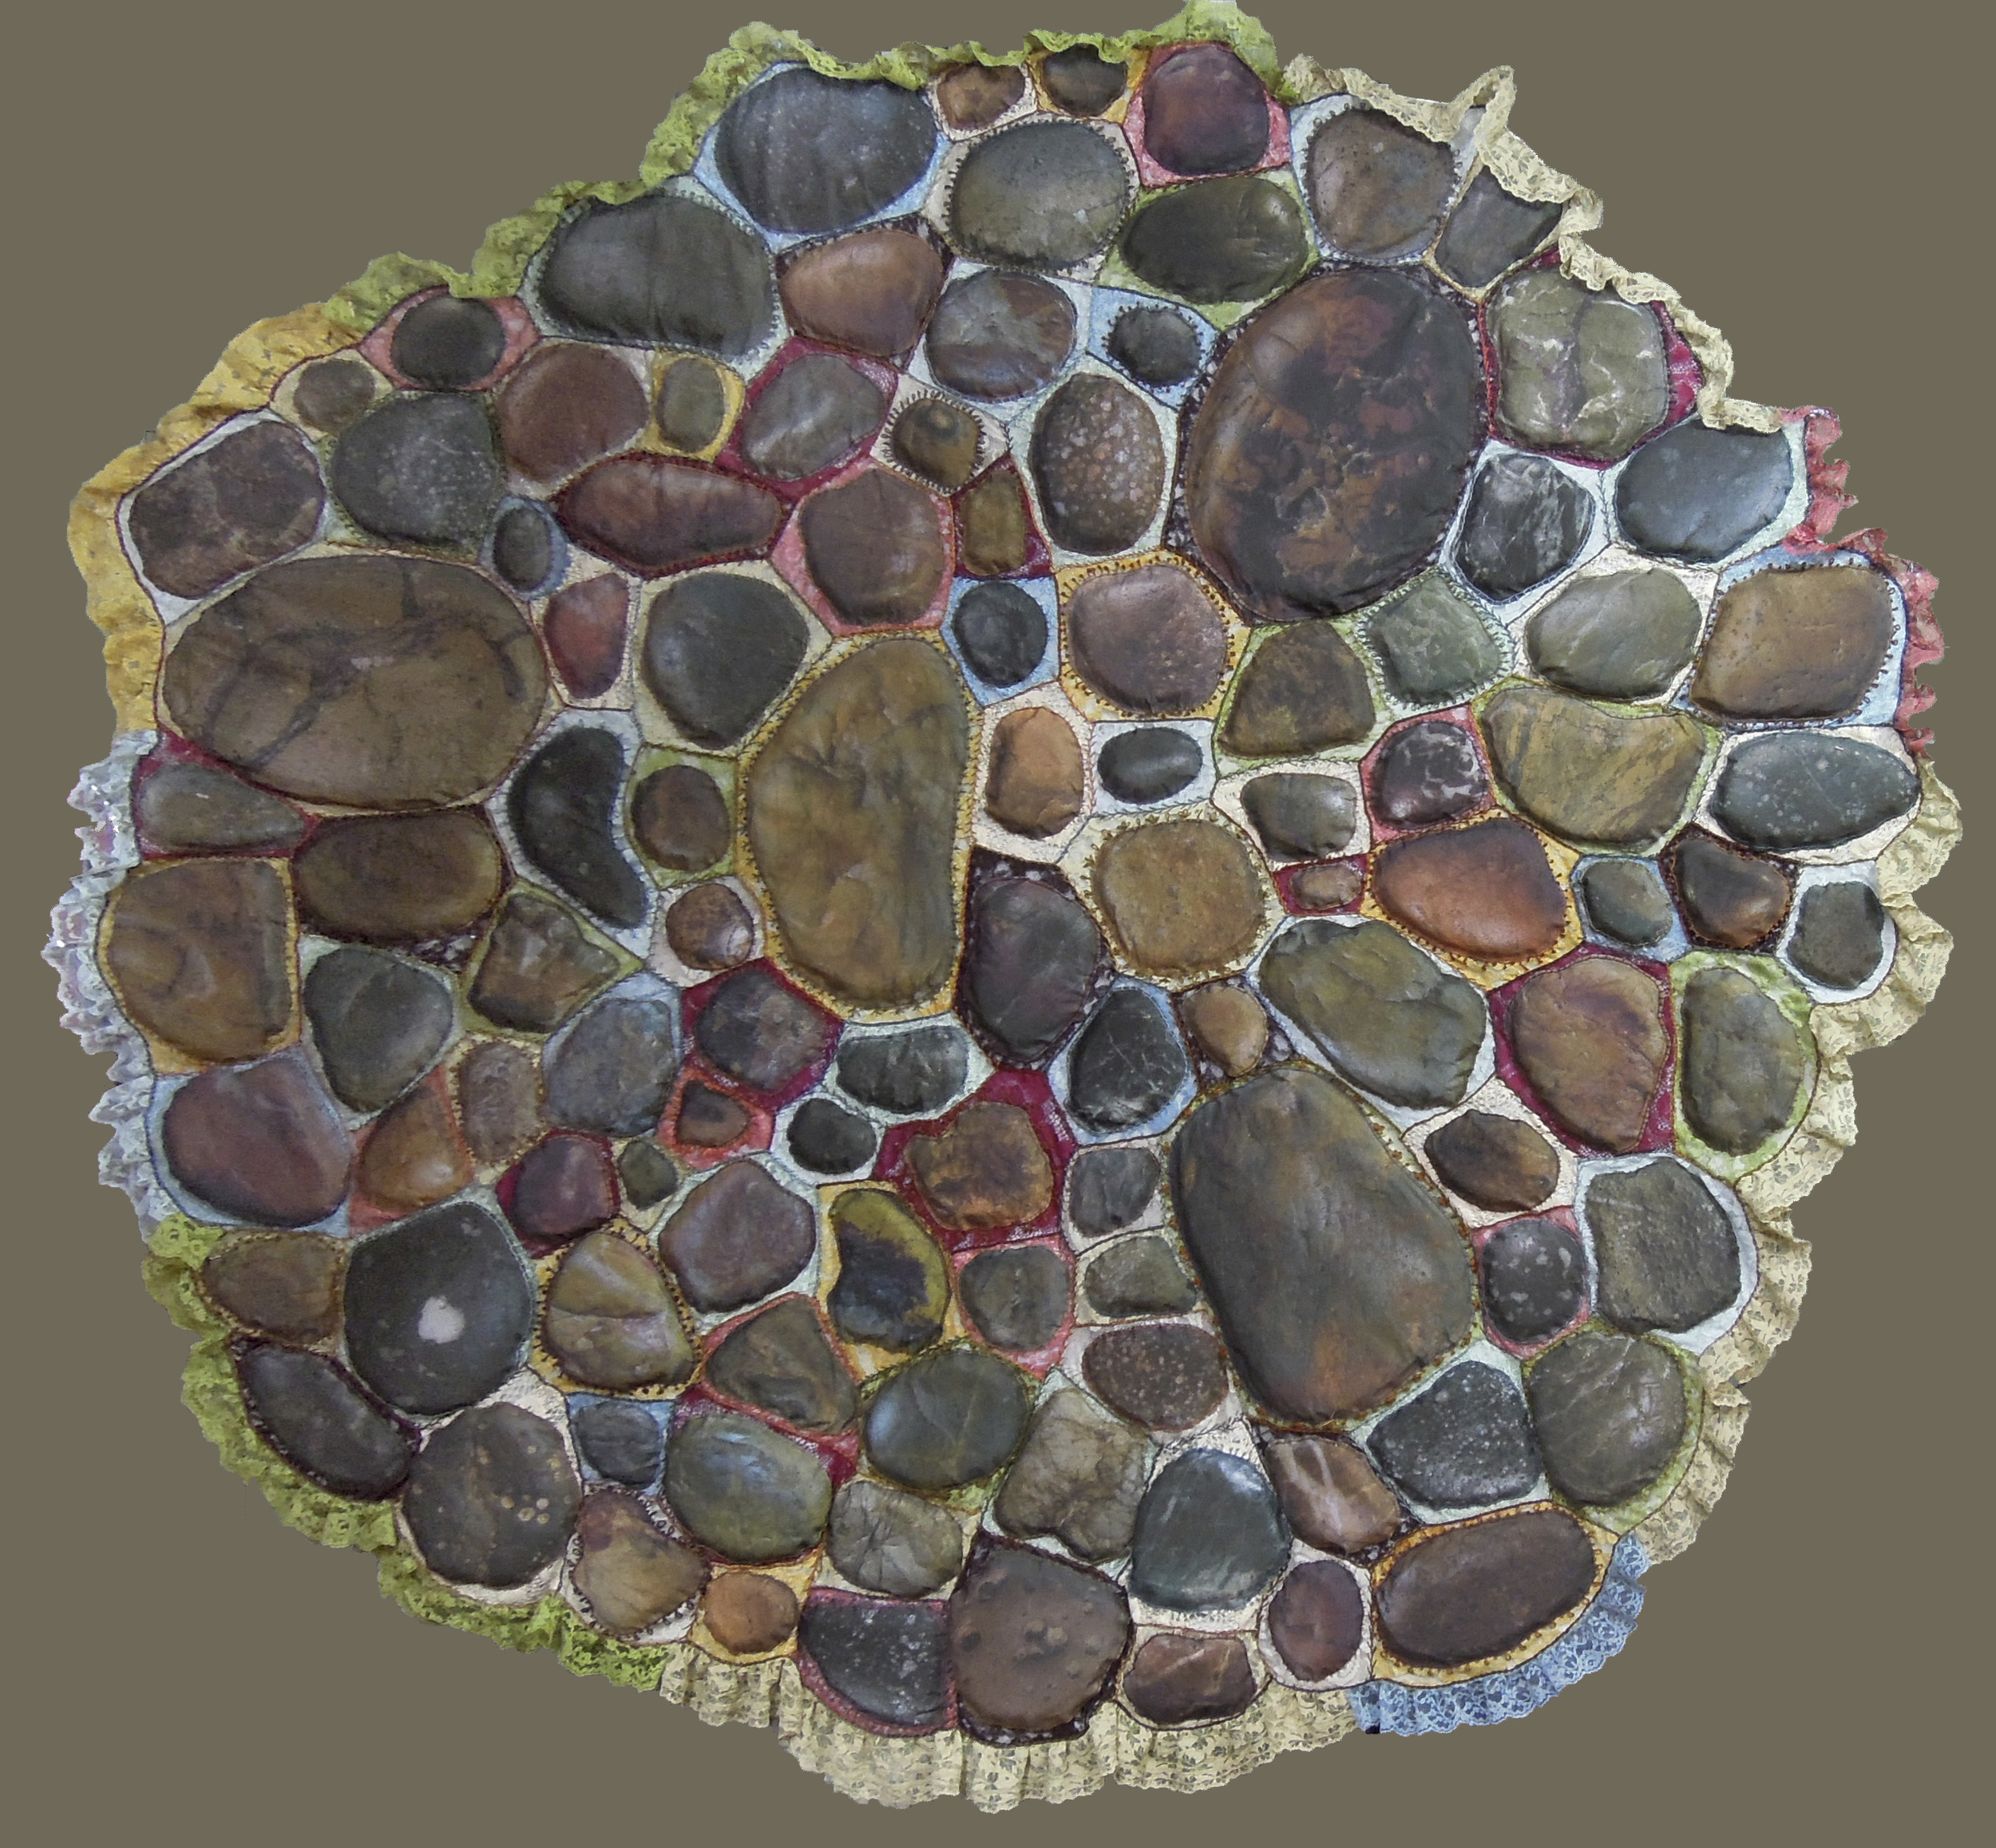 108 Rocks of Rodeo Beach (2012) (SOLD)